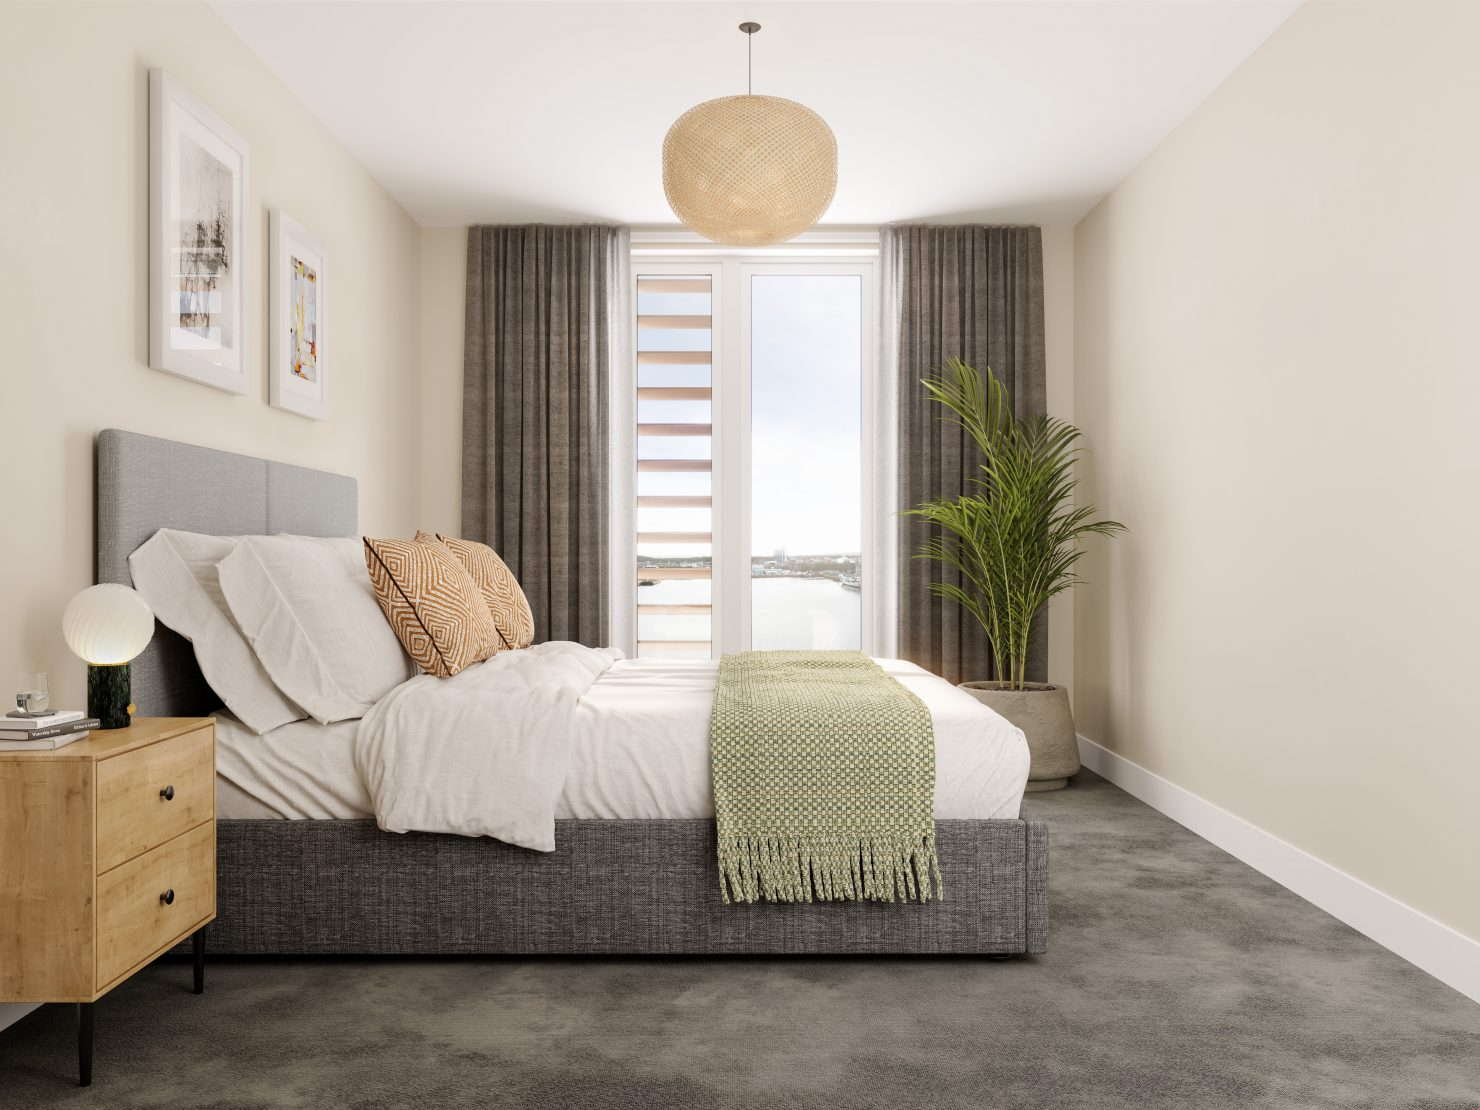 2 Bed image